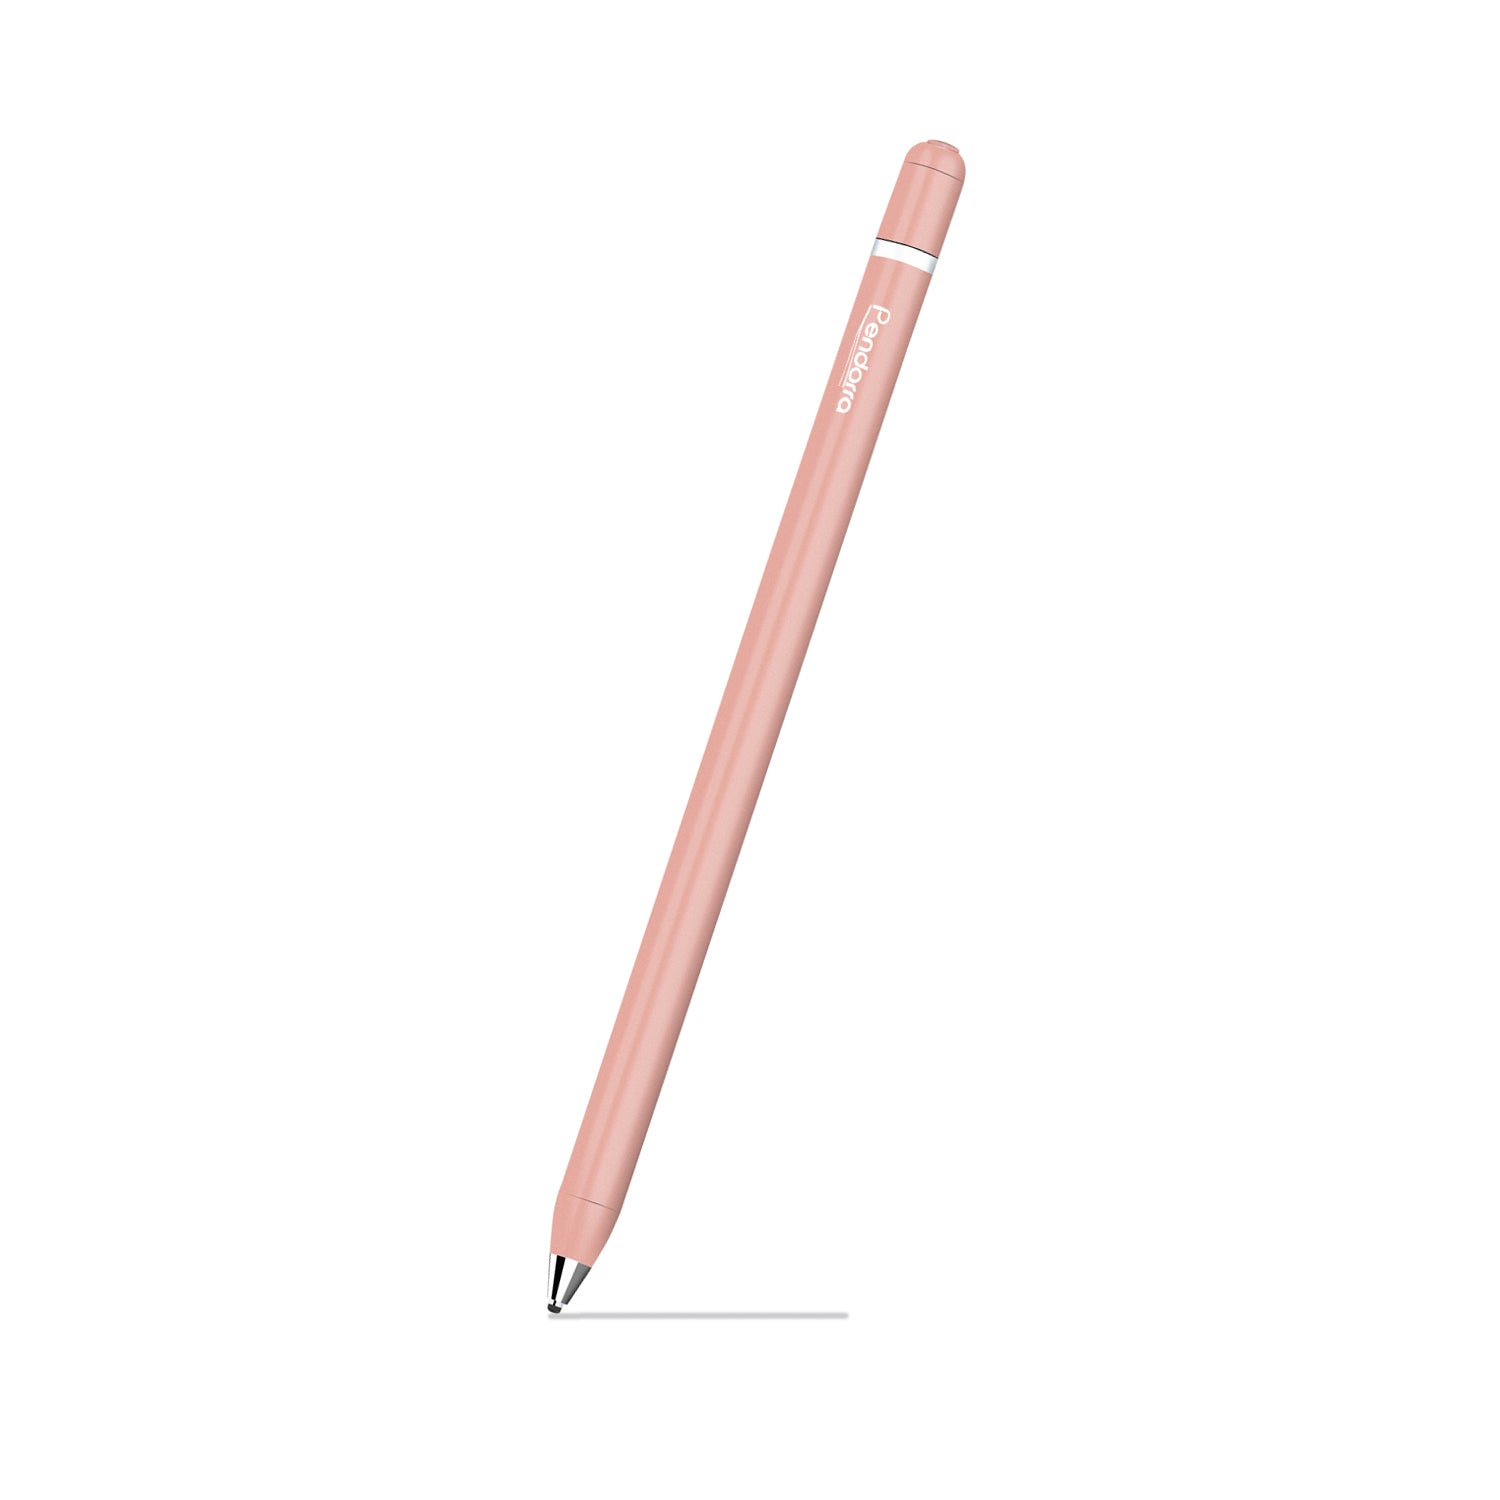 Pendorra stylus pen drawing pencil rose gold pendorra